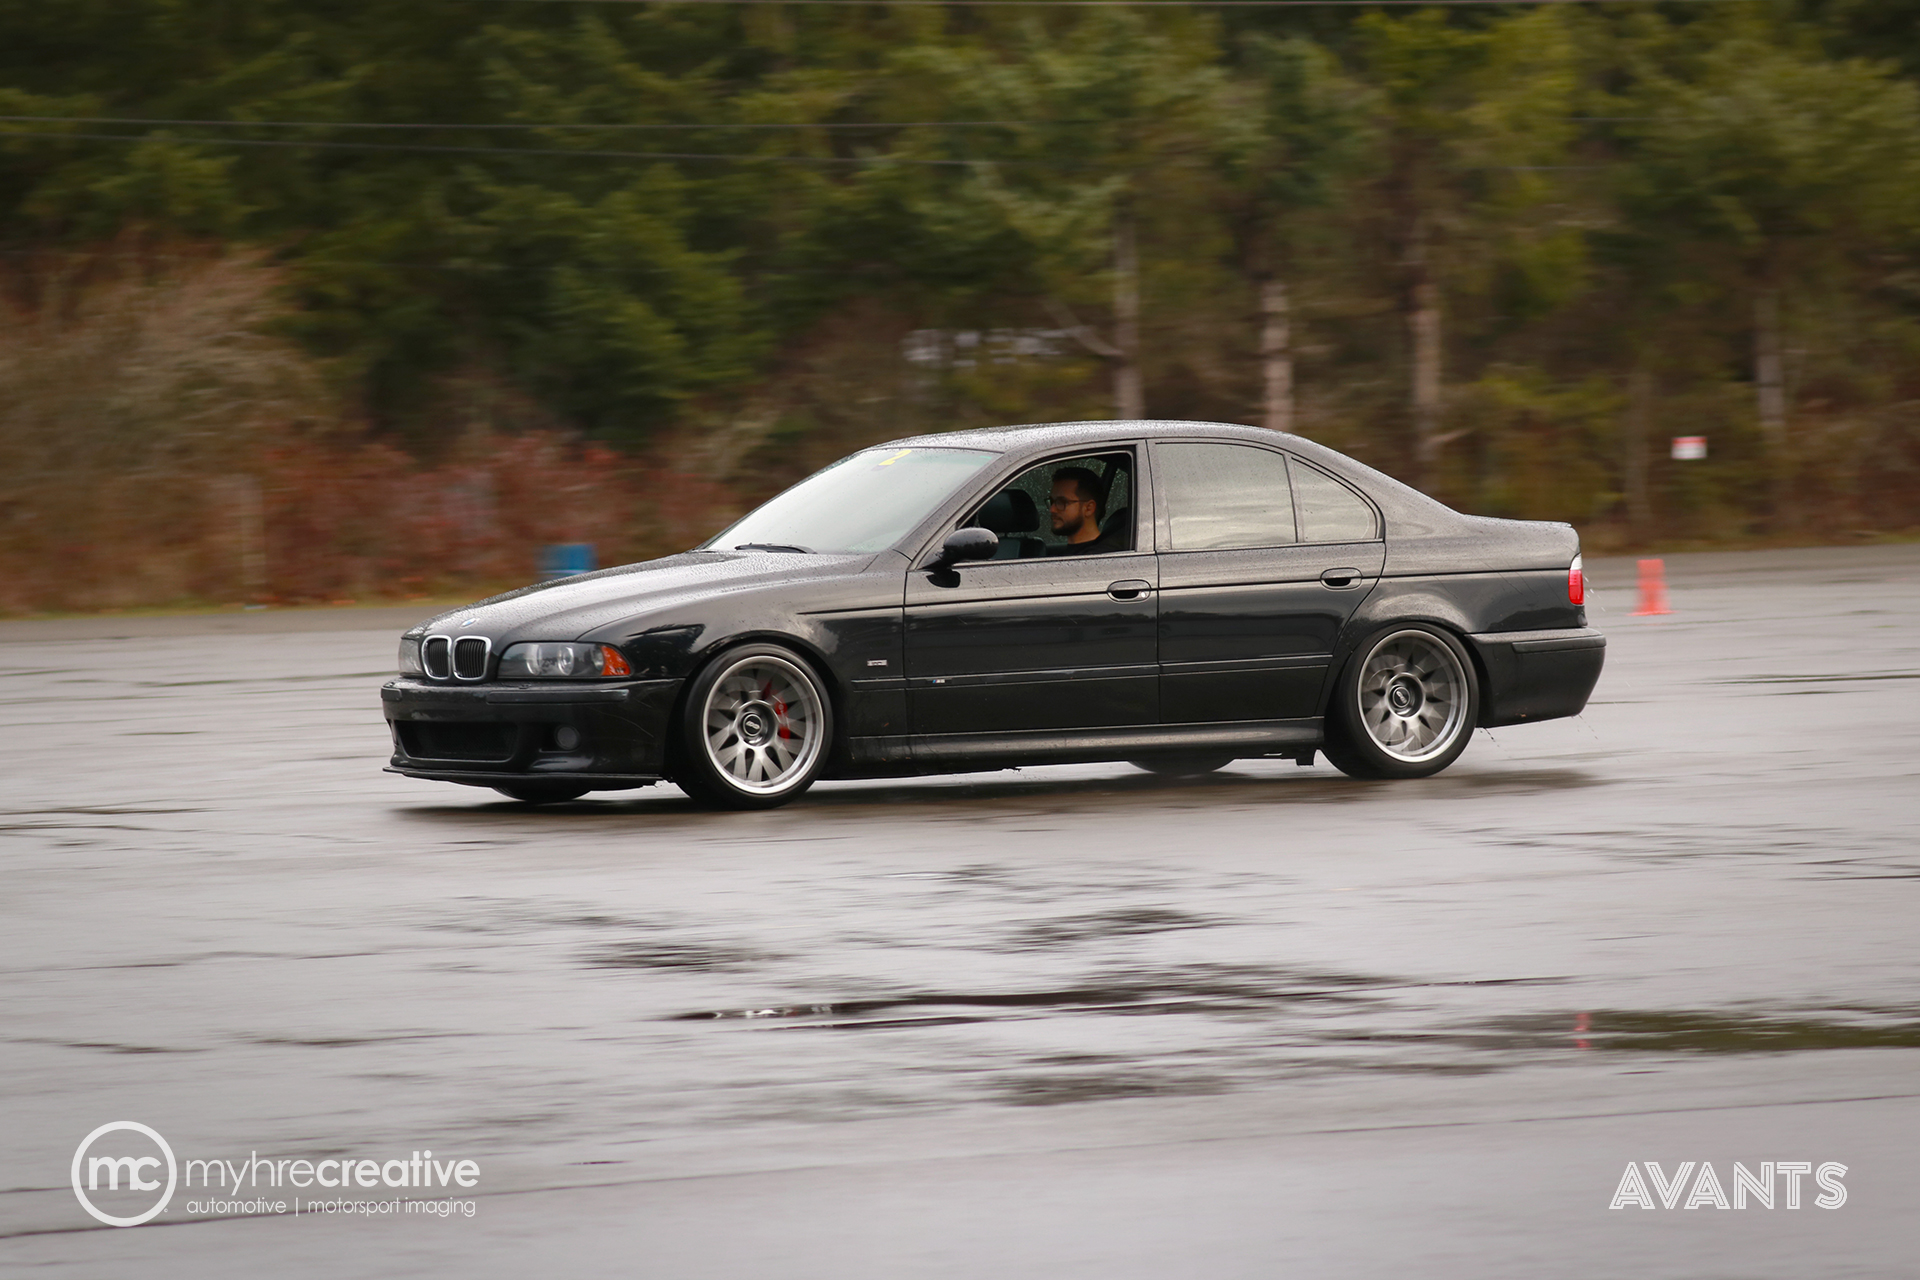 BlackBMW_MyhreCreative_Avants_03_w.jpg